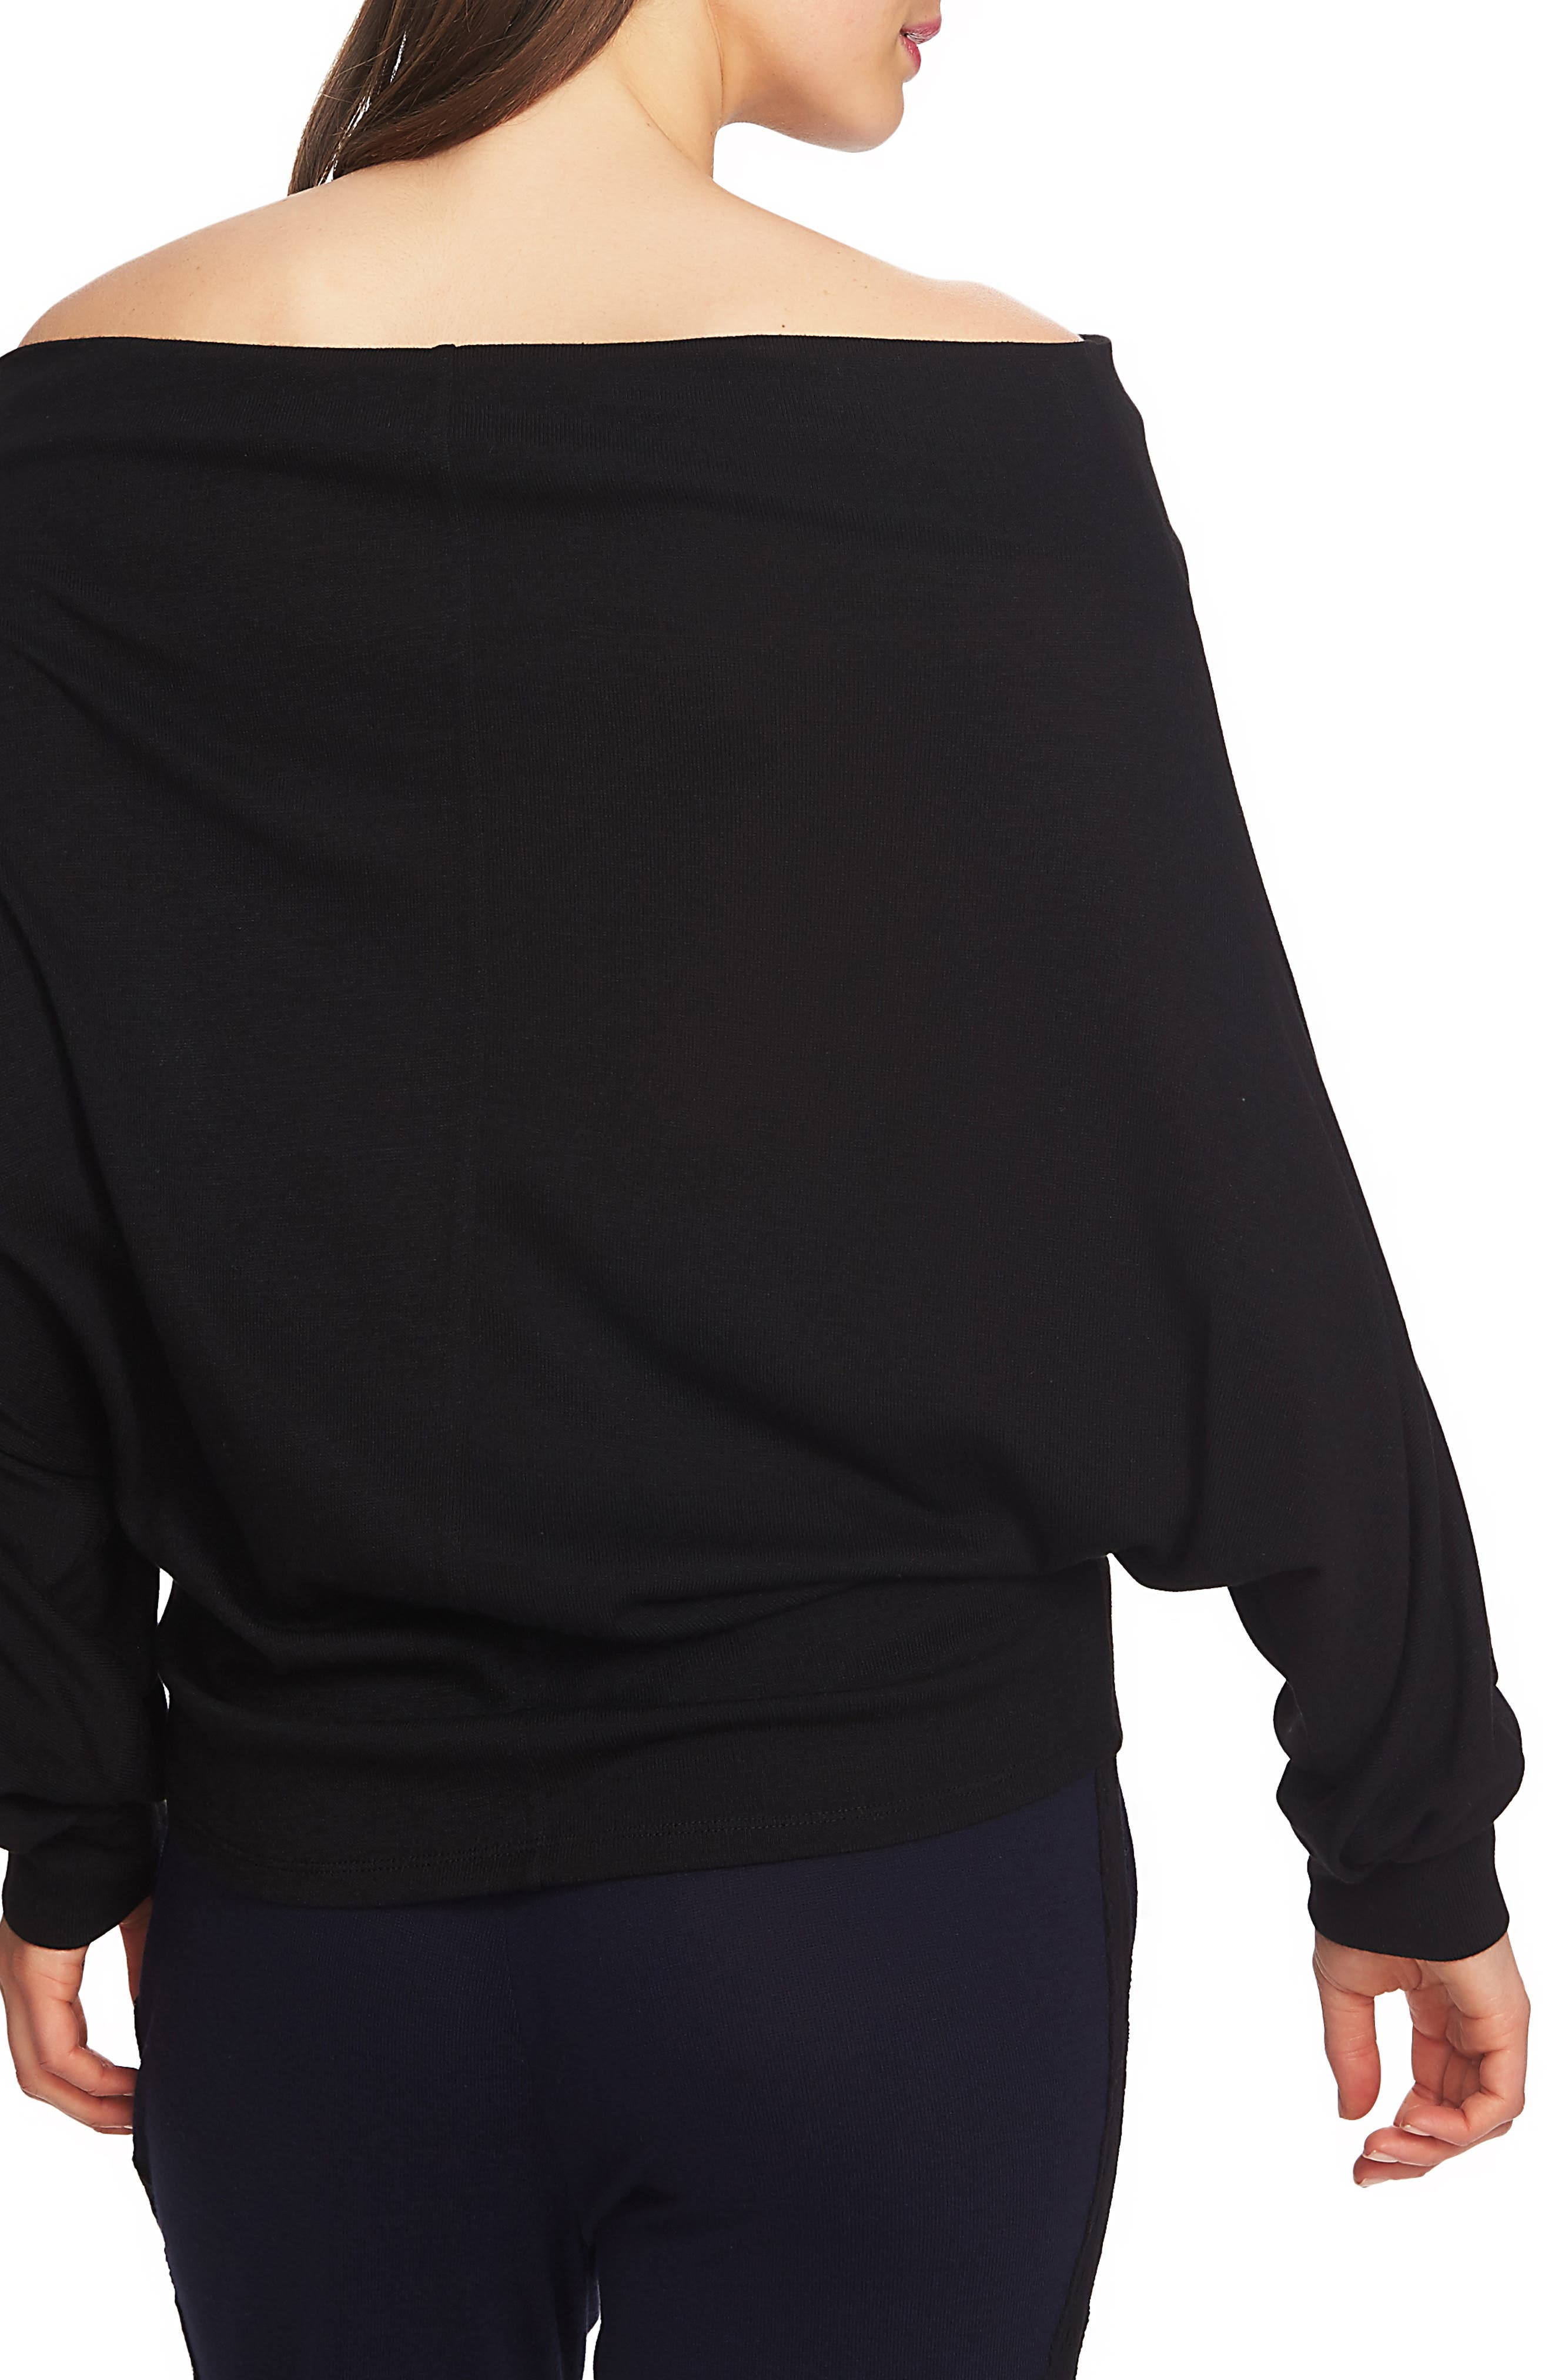 Off the Shoulder Sweater,                             Alternate thumbnail 2, color,                             006